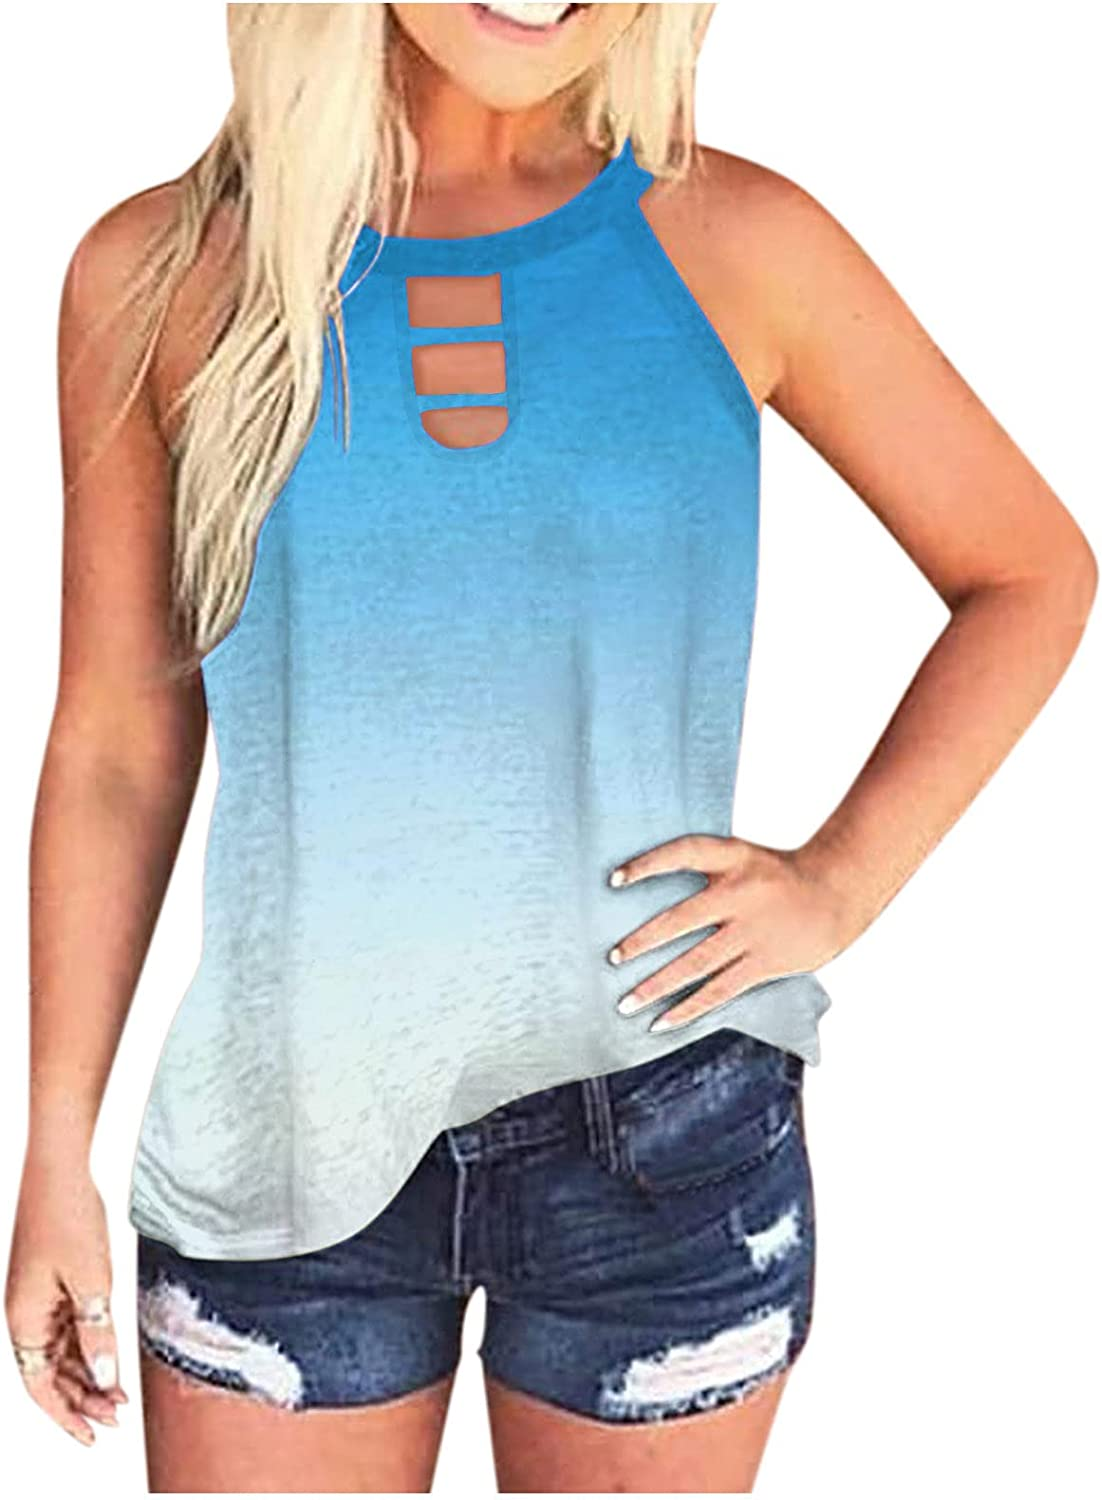 Women's Casual Sleeveless Blouse Tunic Shirt Halter O-Neck T Shirt Independence Day Tops Vest